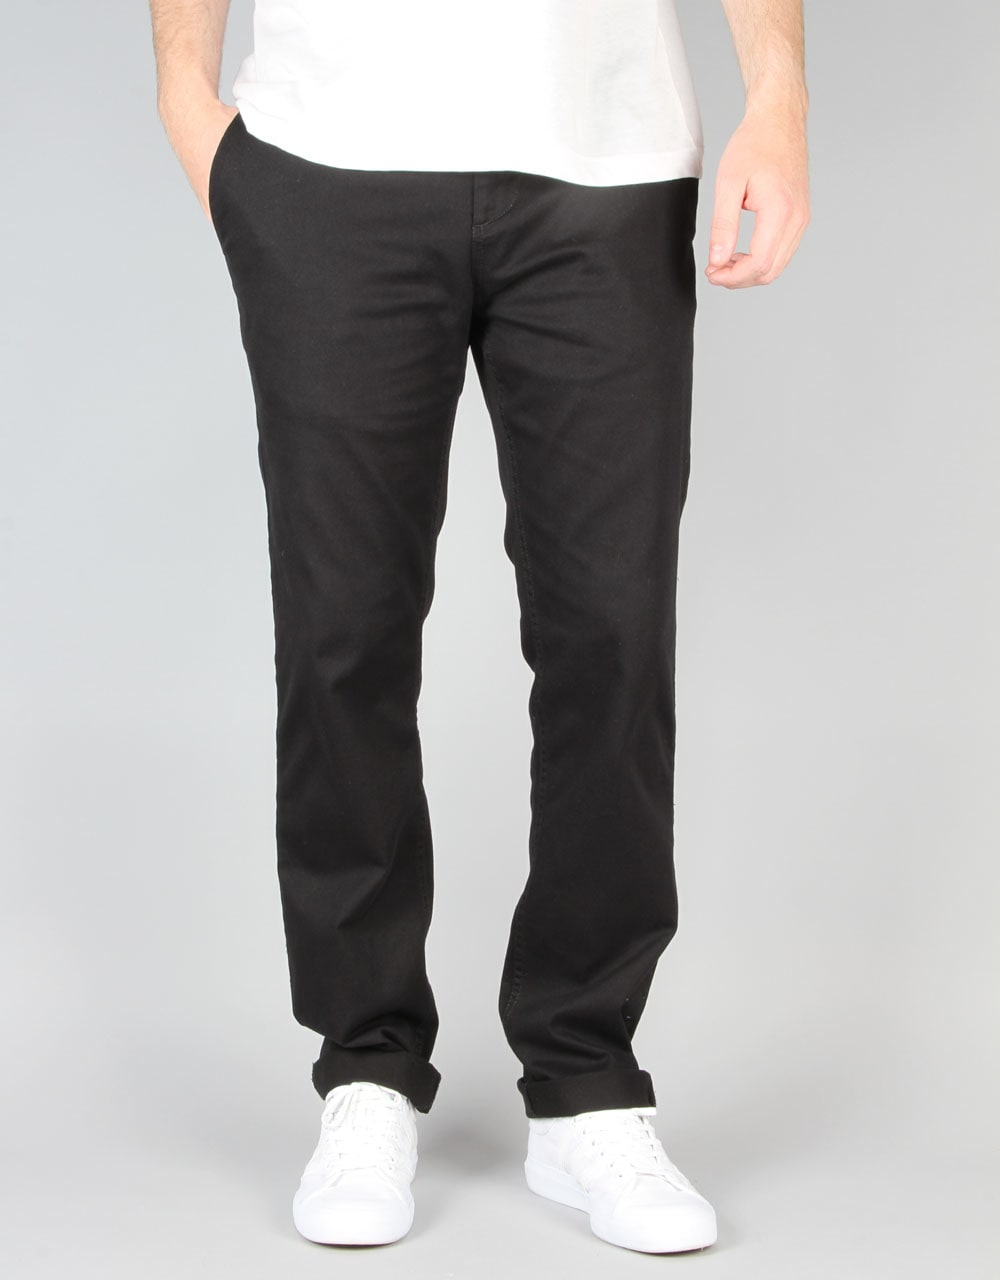 DC Worker Slim Chino Pant - Black  08d5594416